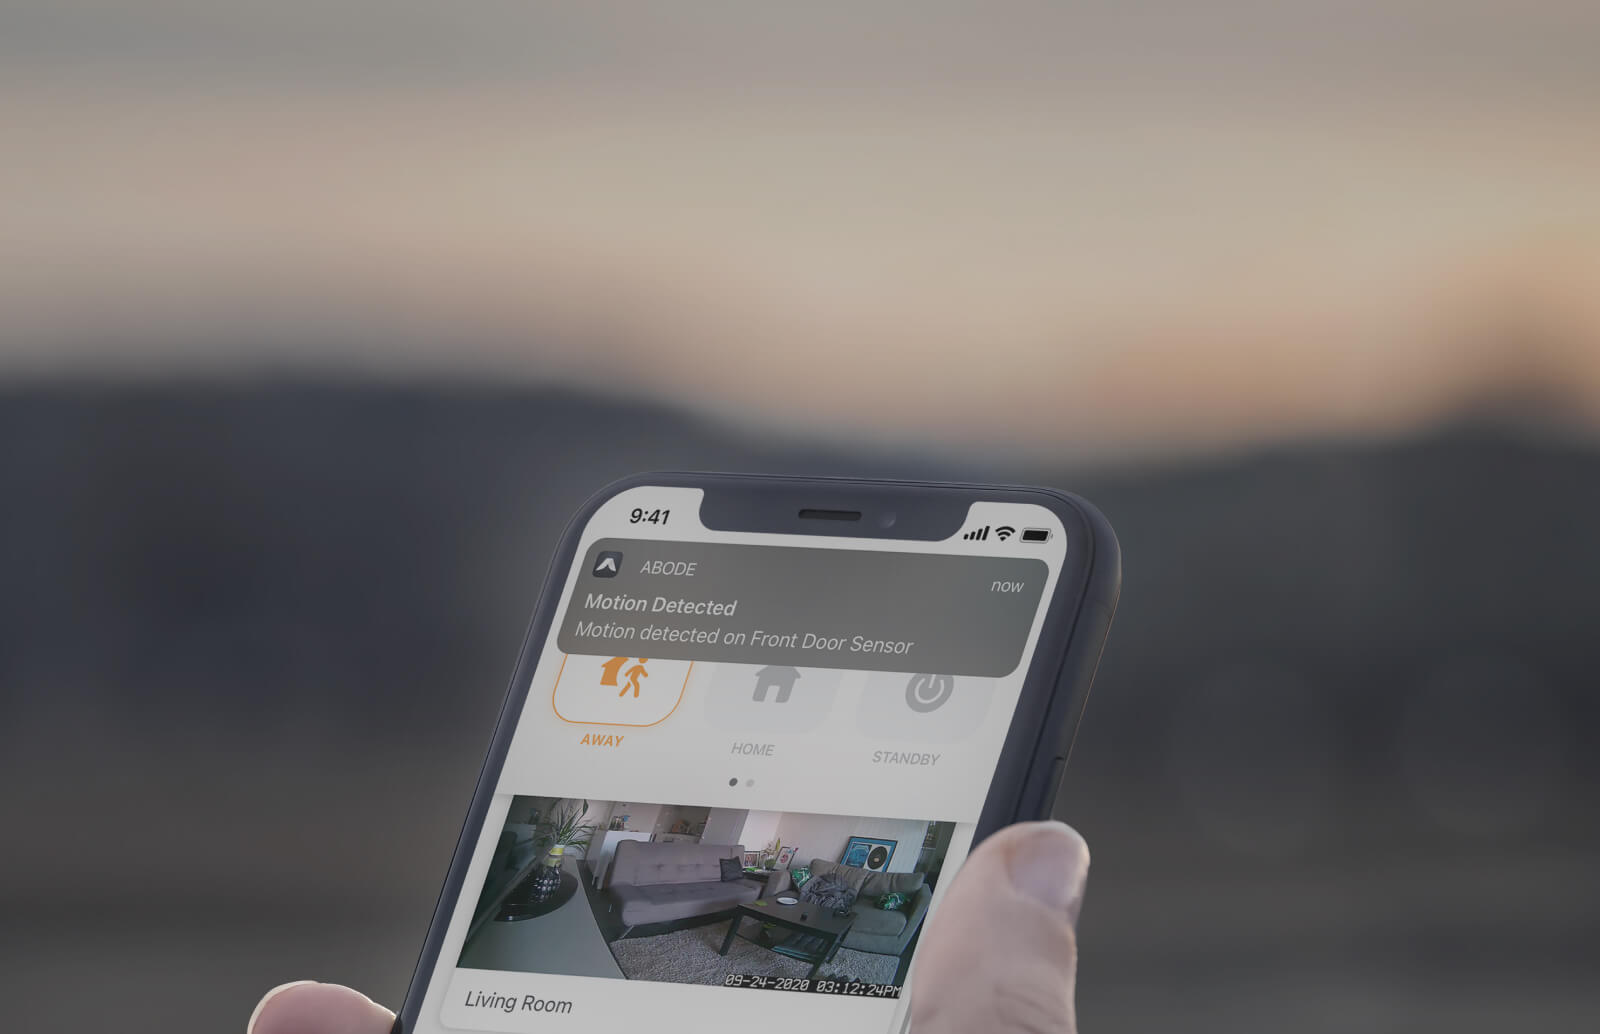 Self-Monitoring with abode banner